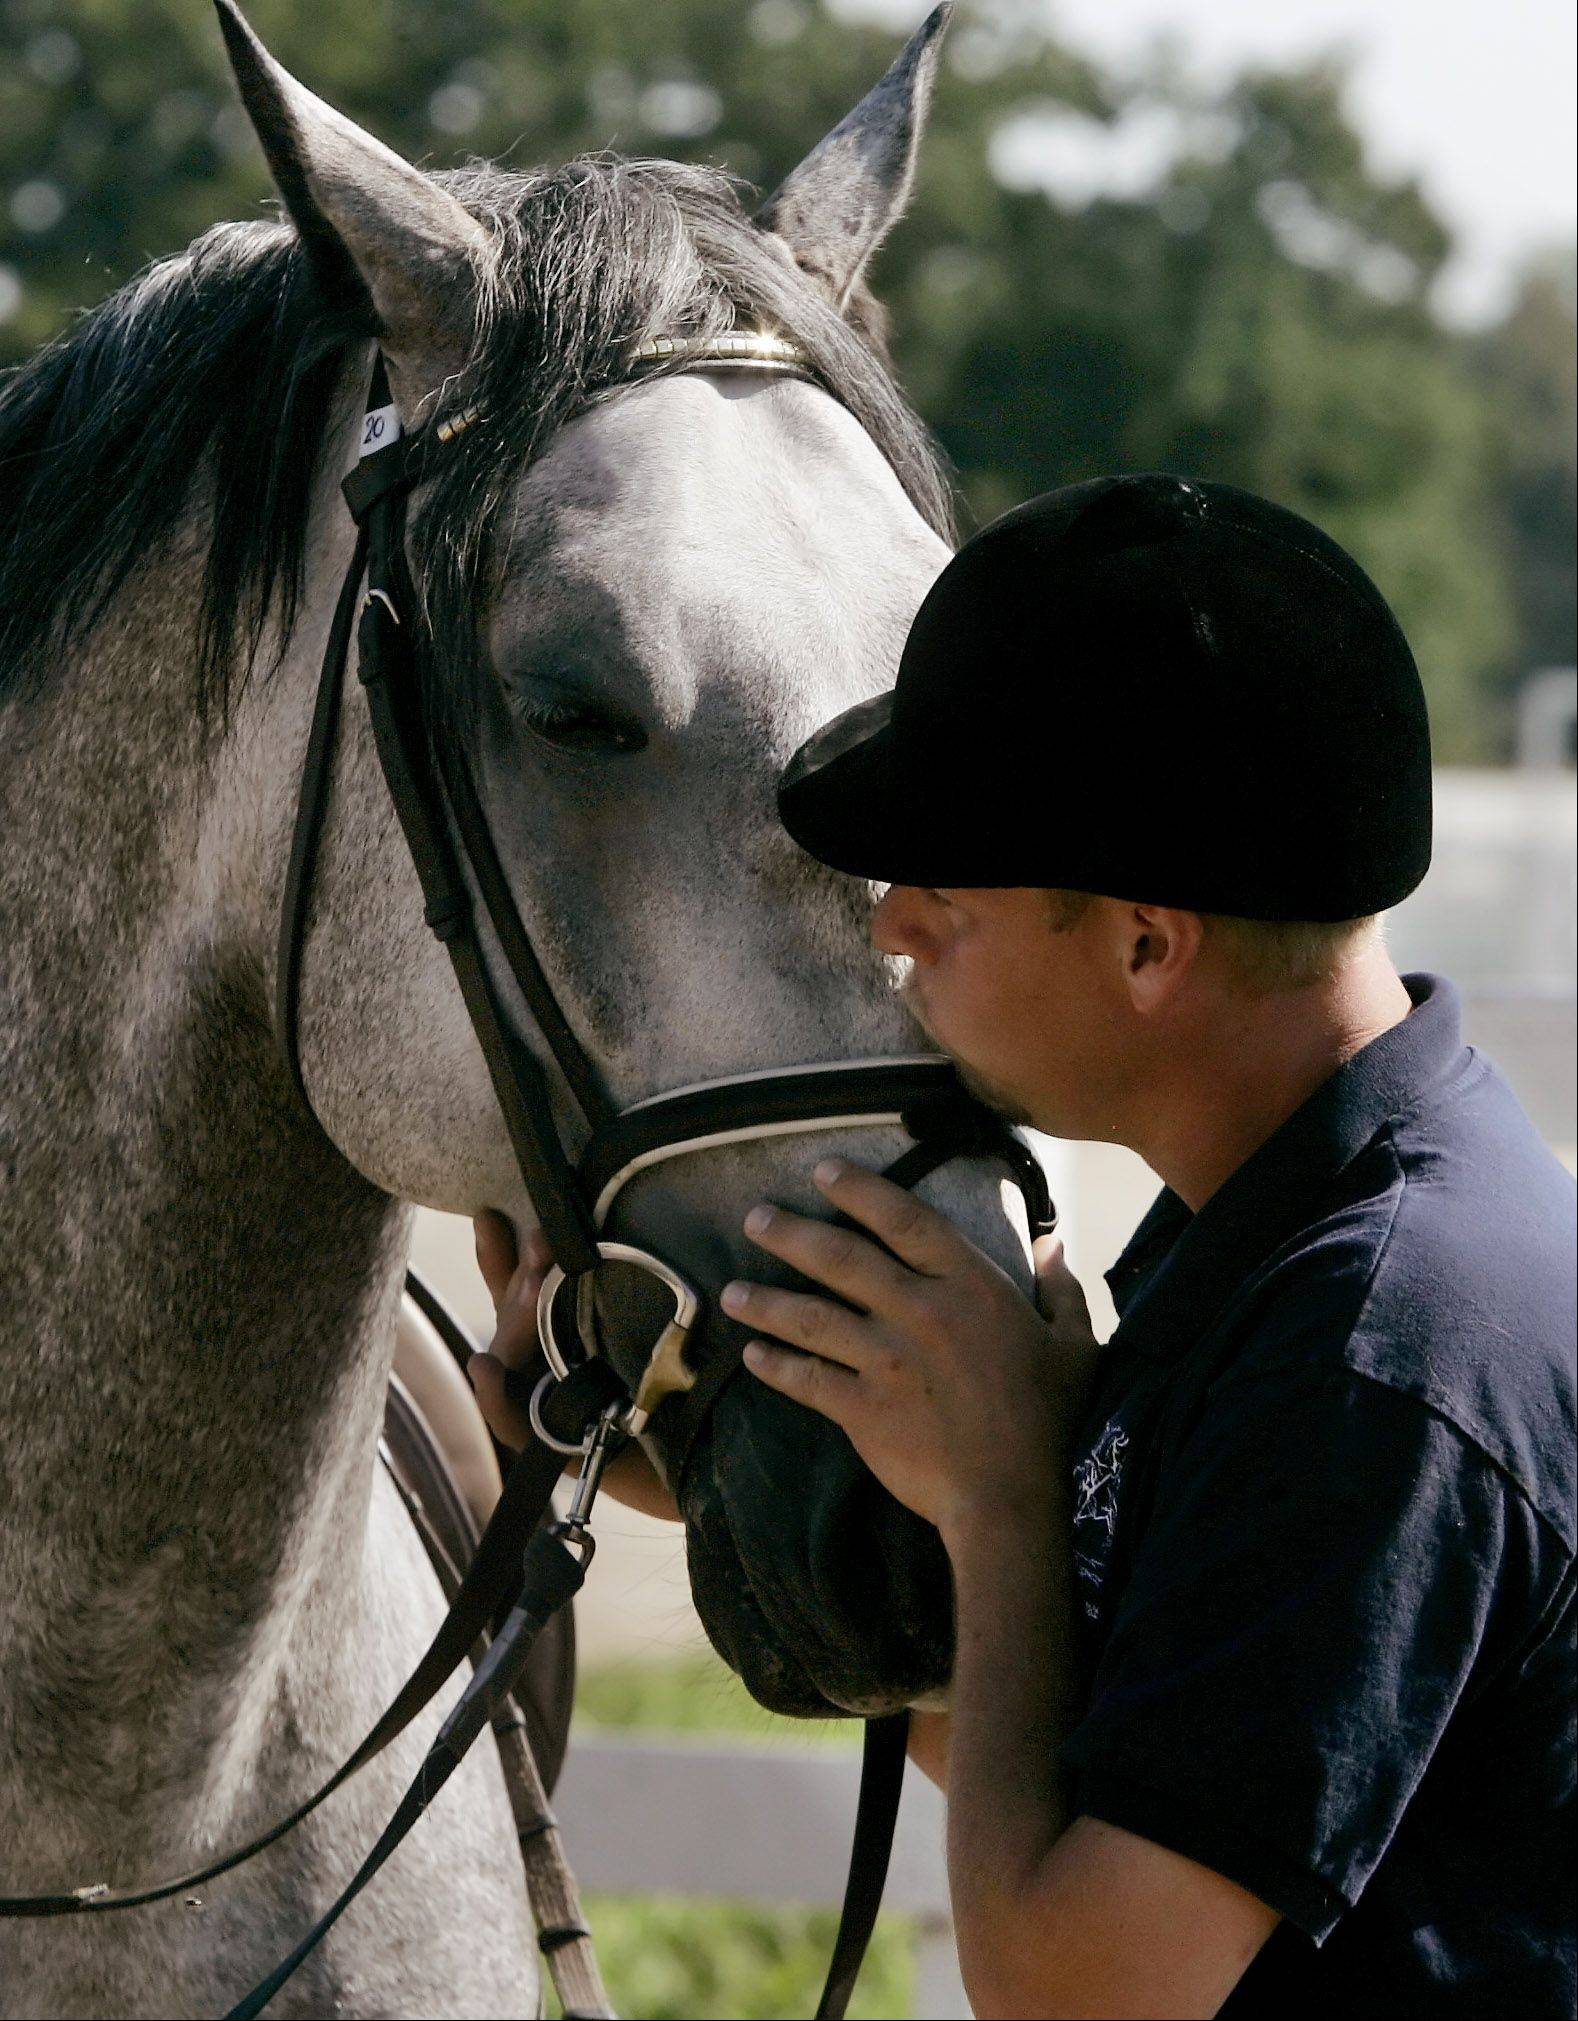 Dressage trainer Victor Pozzo gives Favory VII Anita a kiss after riding him in the training ring at Tempel Farms.